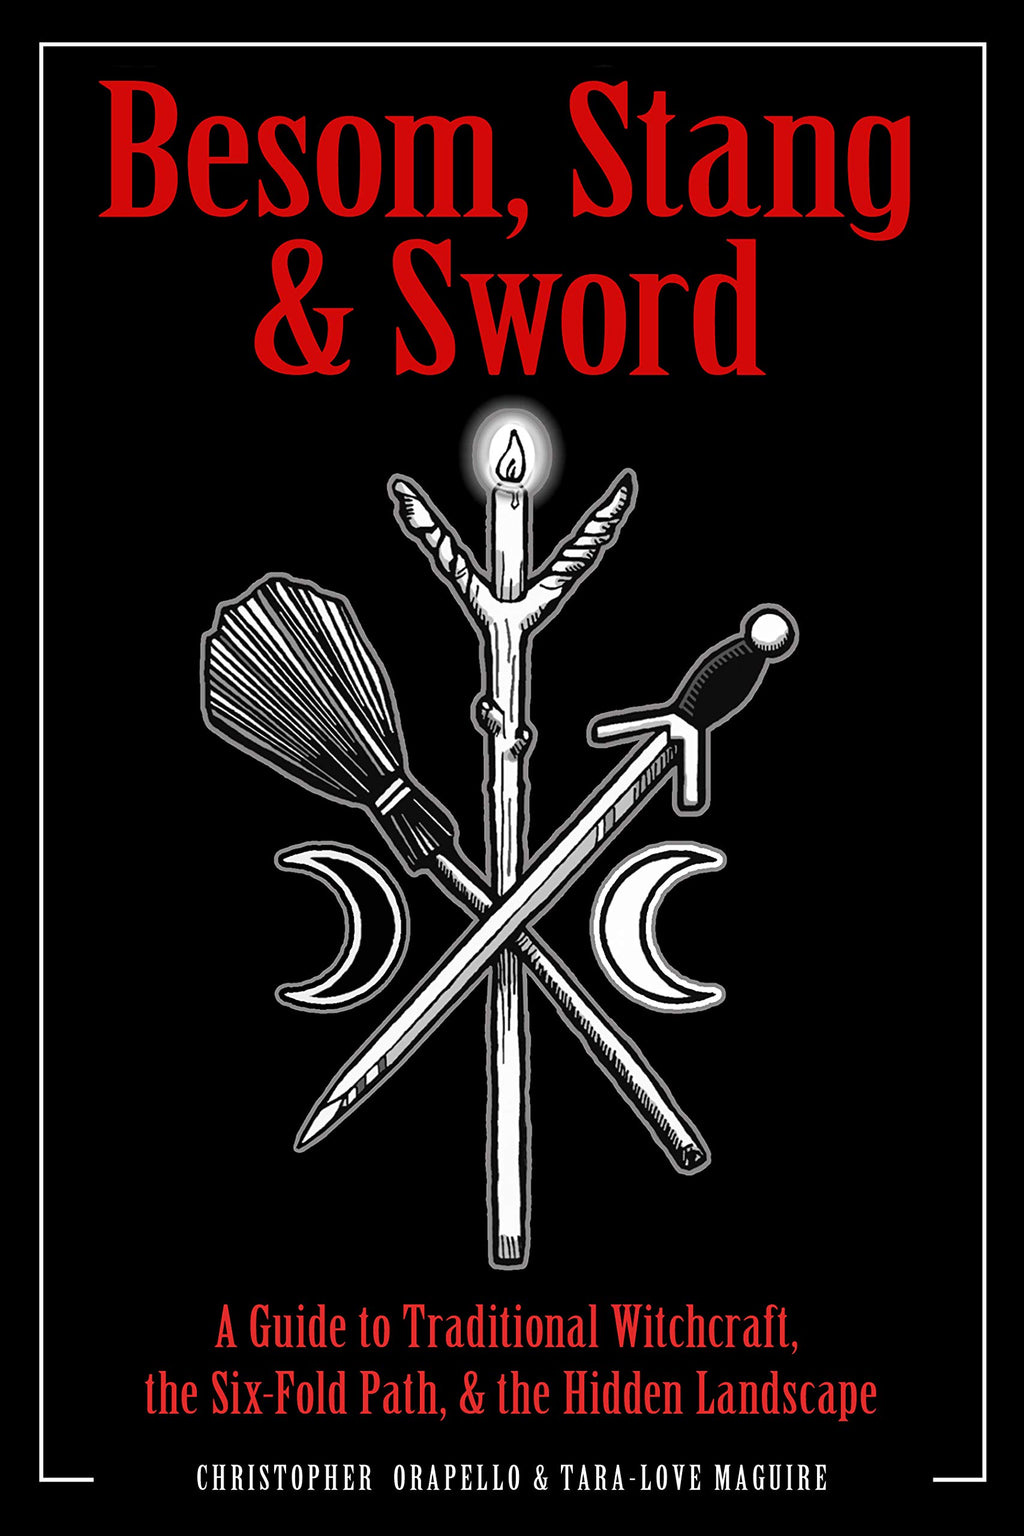 Besom, Stang & Sword by Christopher Orapello & Tara-Love Maguire